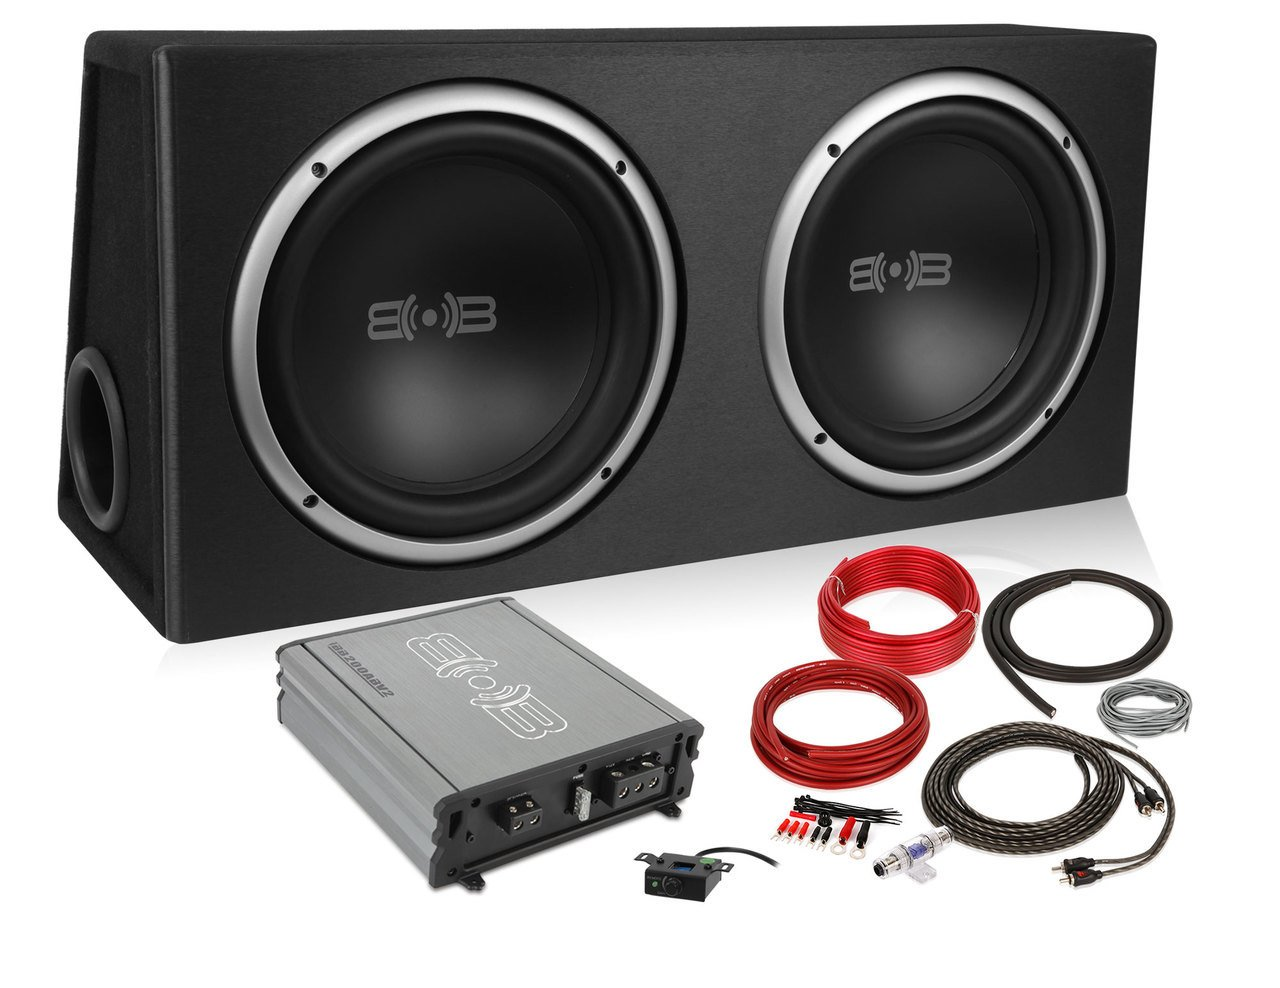 Belva 1200 watt Complete Car Subwoofer Package includes Two (2) 12-inch Subwoofers in Ported Box, Monoblock Amplifier, Amp Wire Kit [BPKG212v2] by Belva